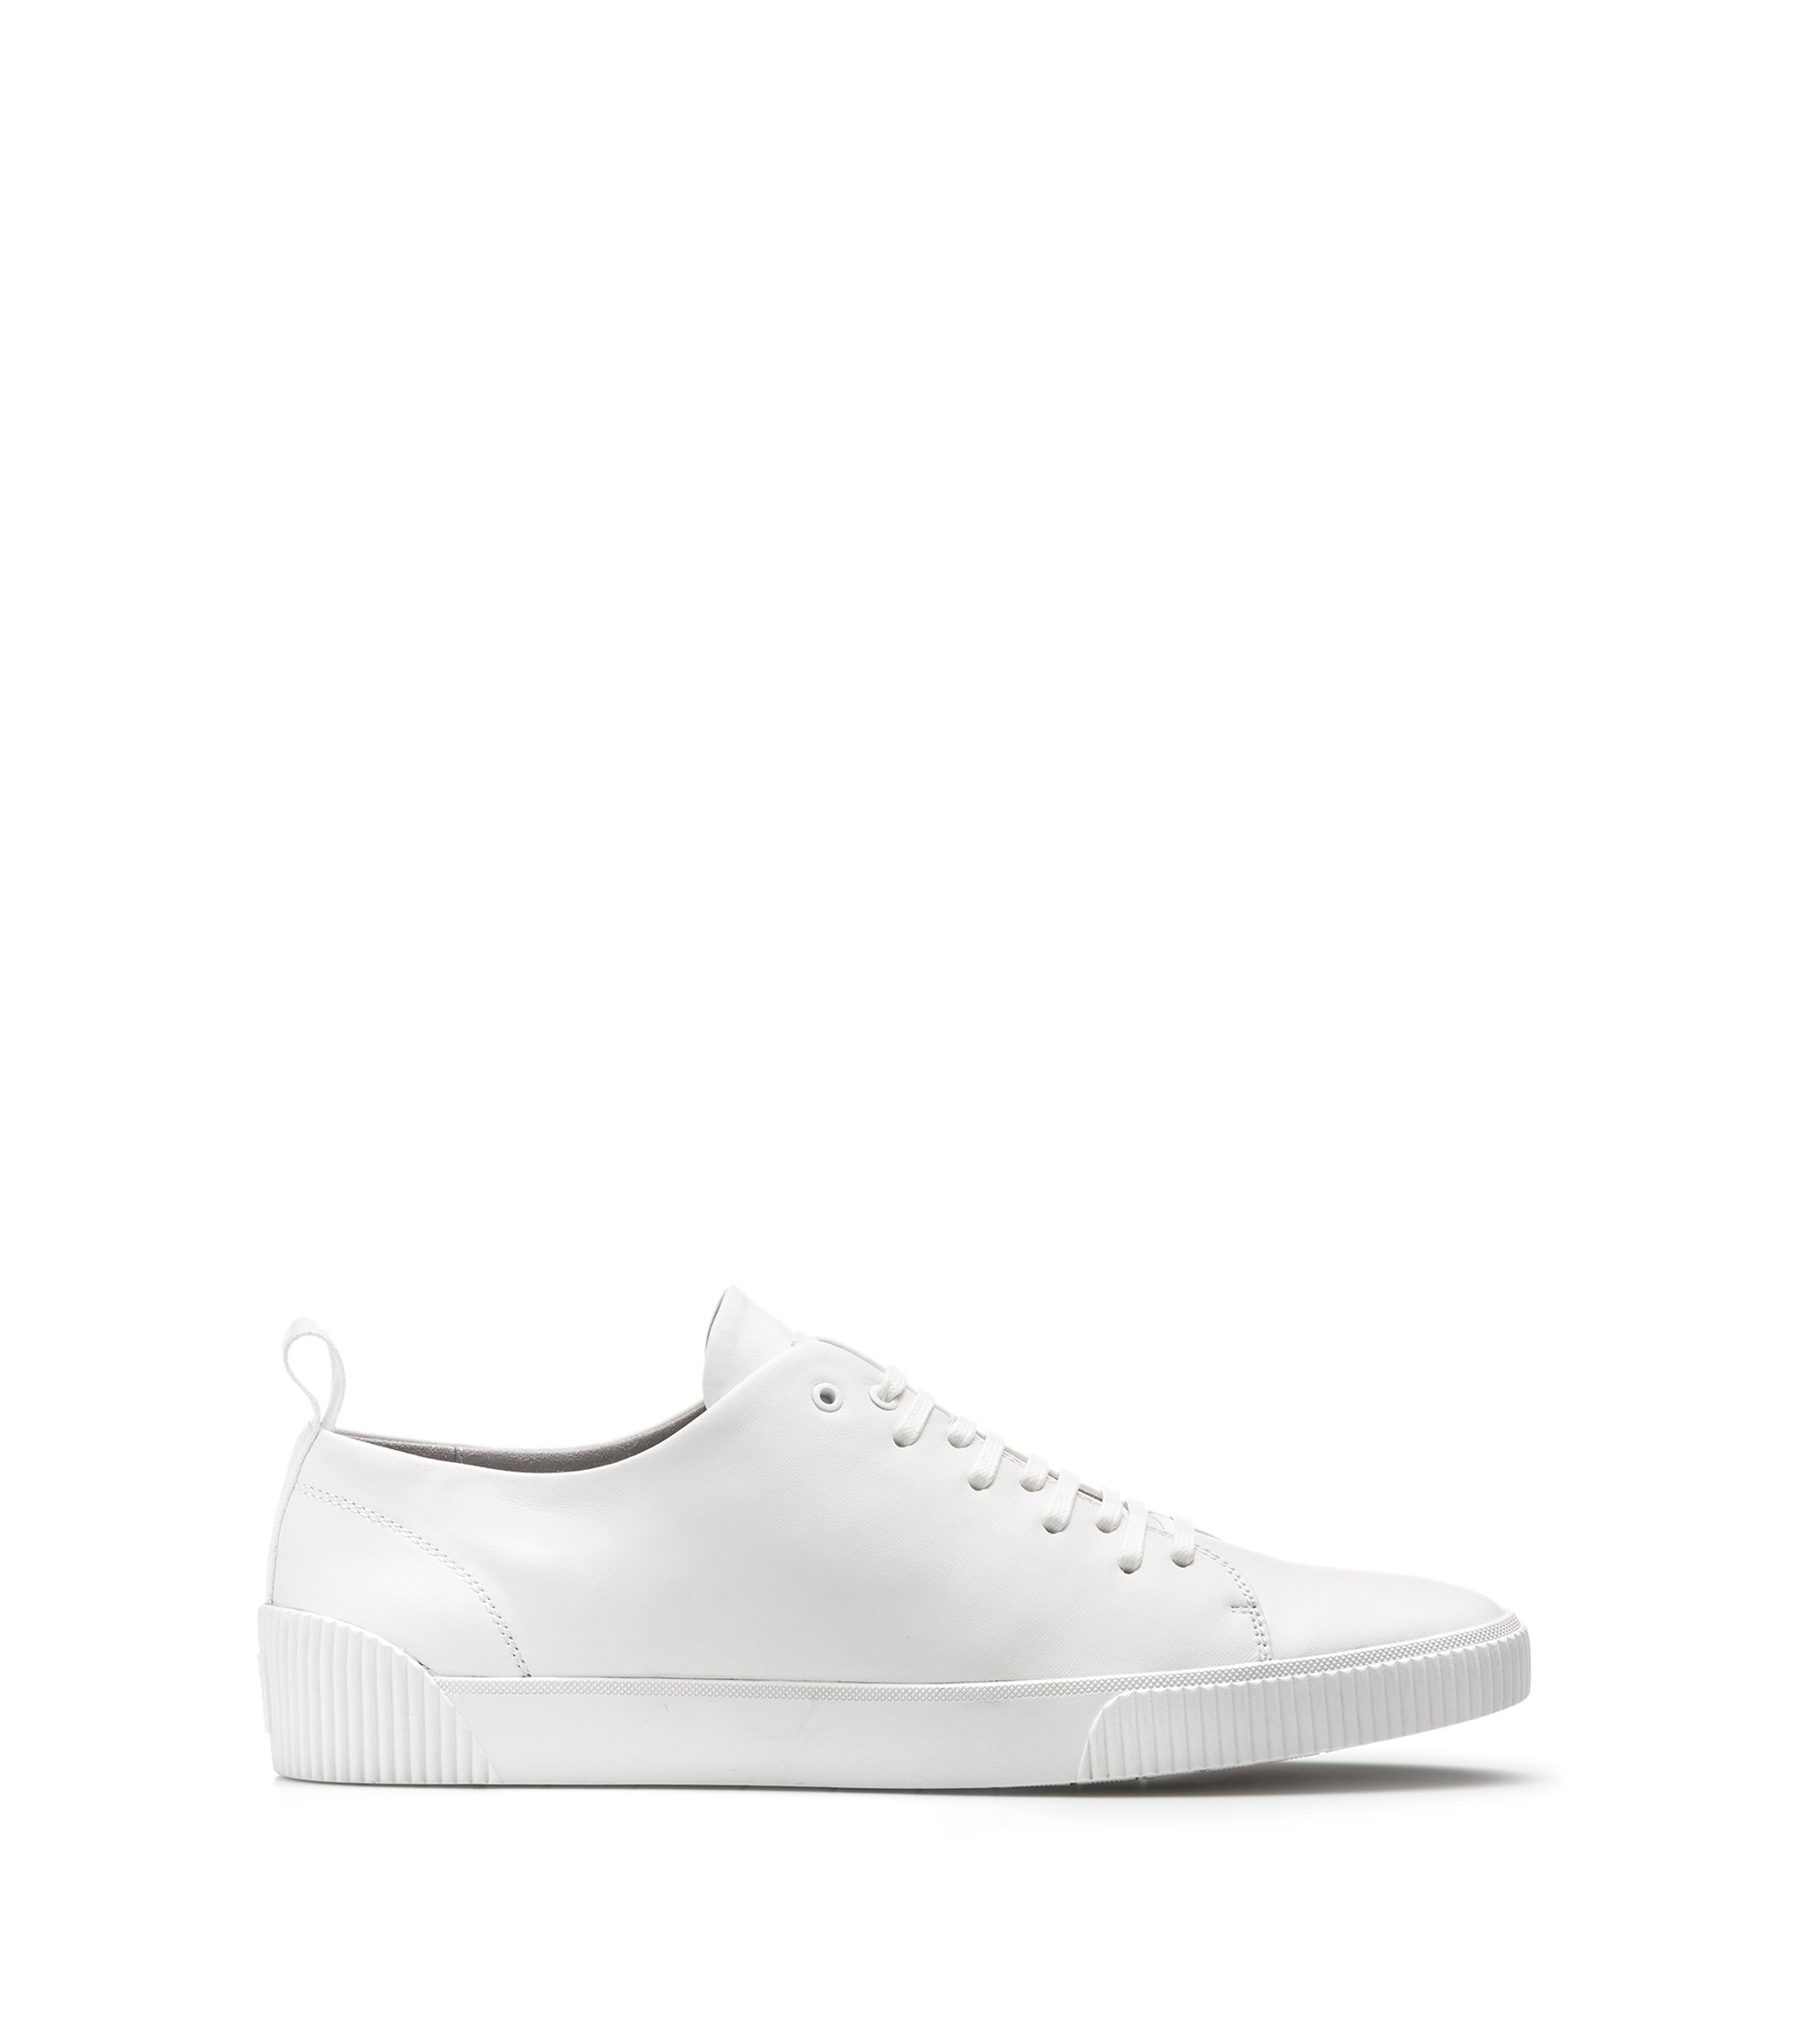 Low-top sneakers in nappa leather with logo detail, White